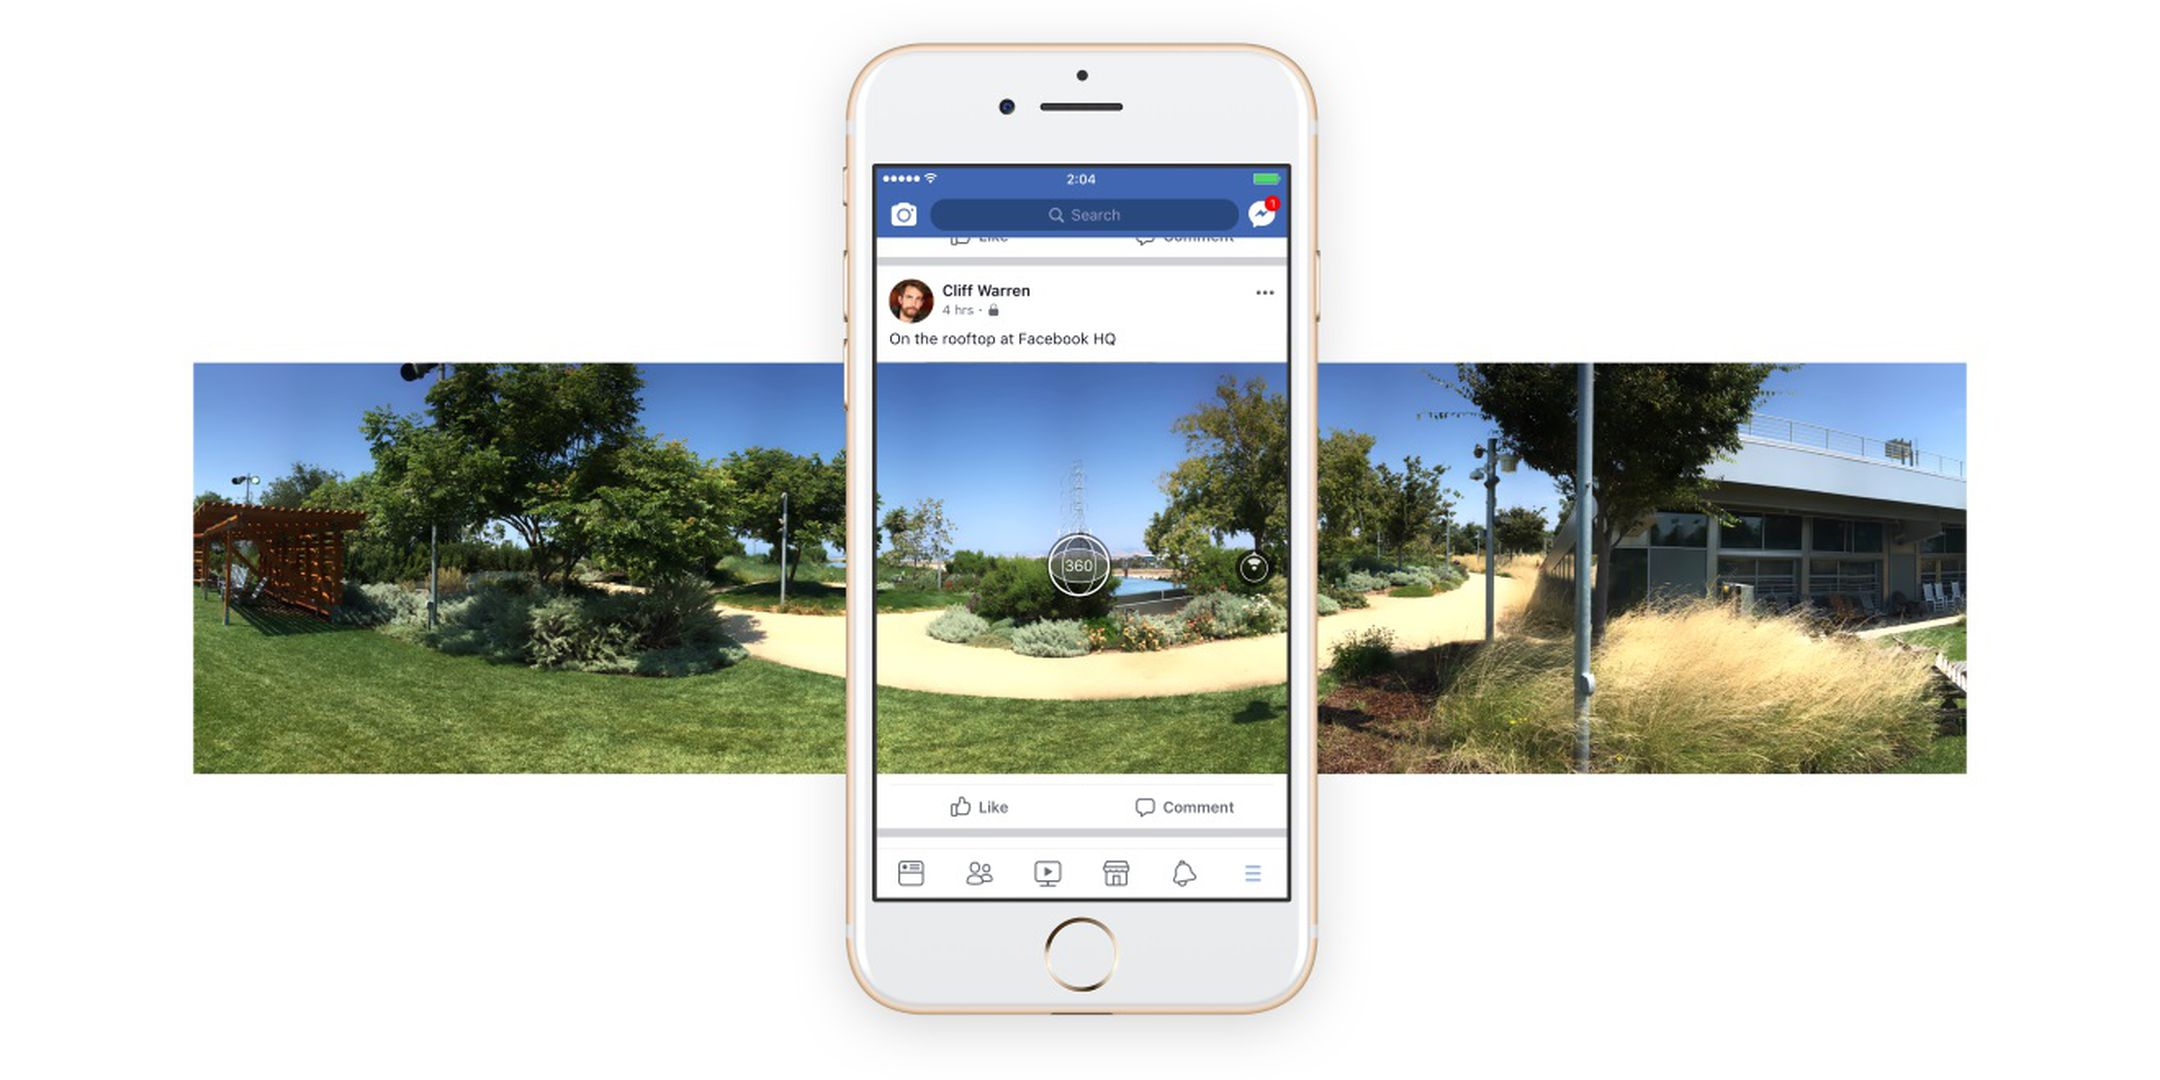 Facebook now lets you shoot 360-degree photos inside its app